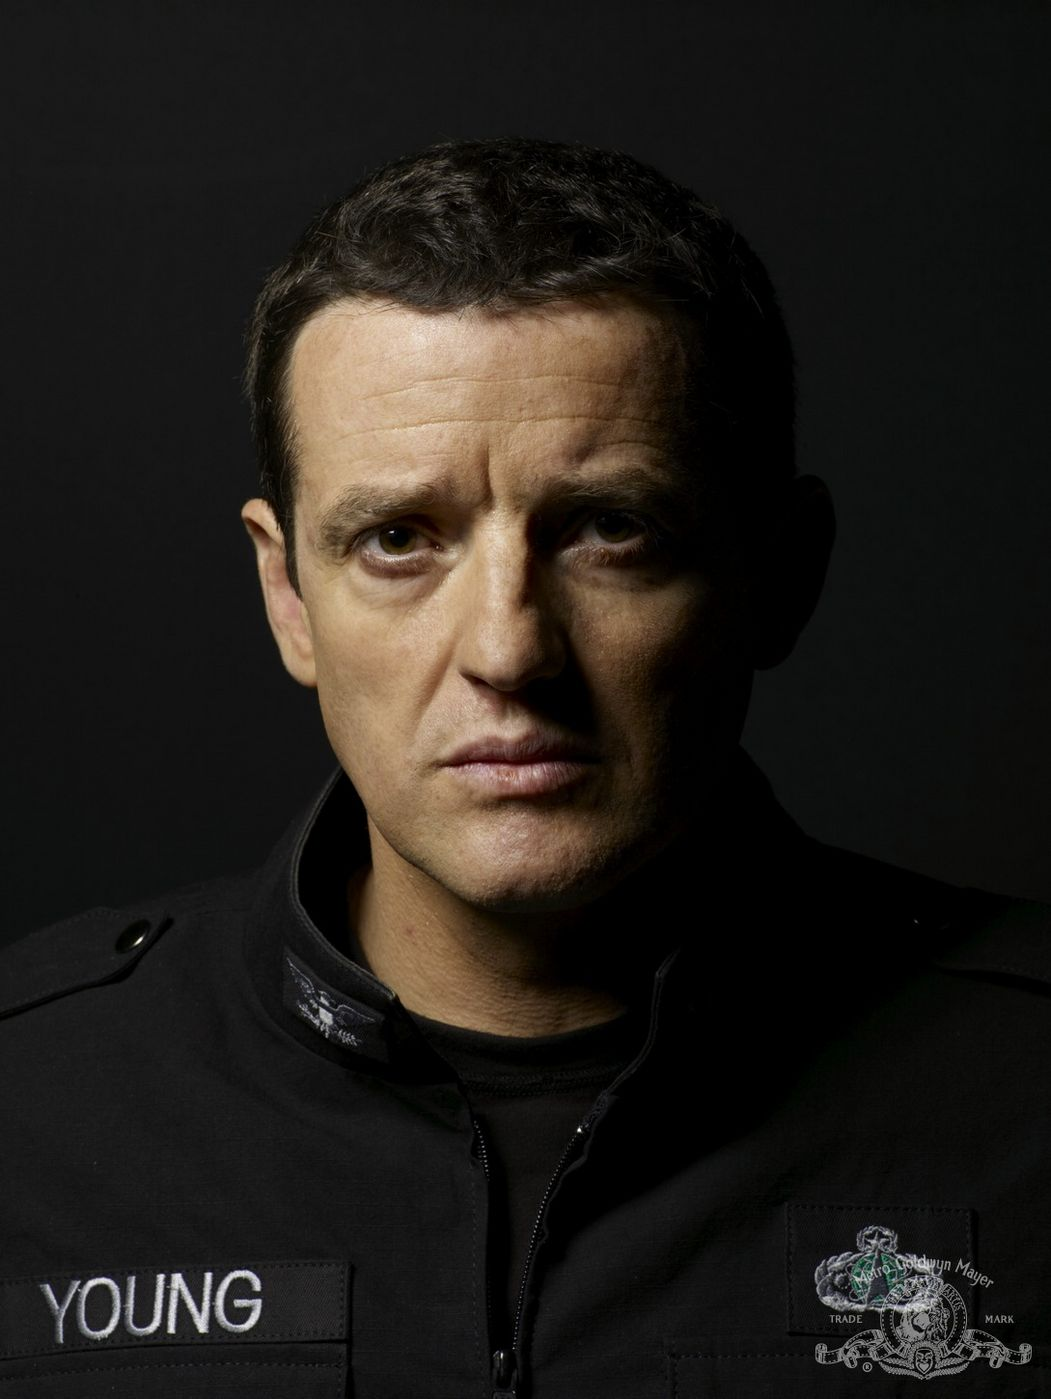 Louis Ferreira as Col. Everett Young